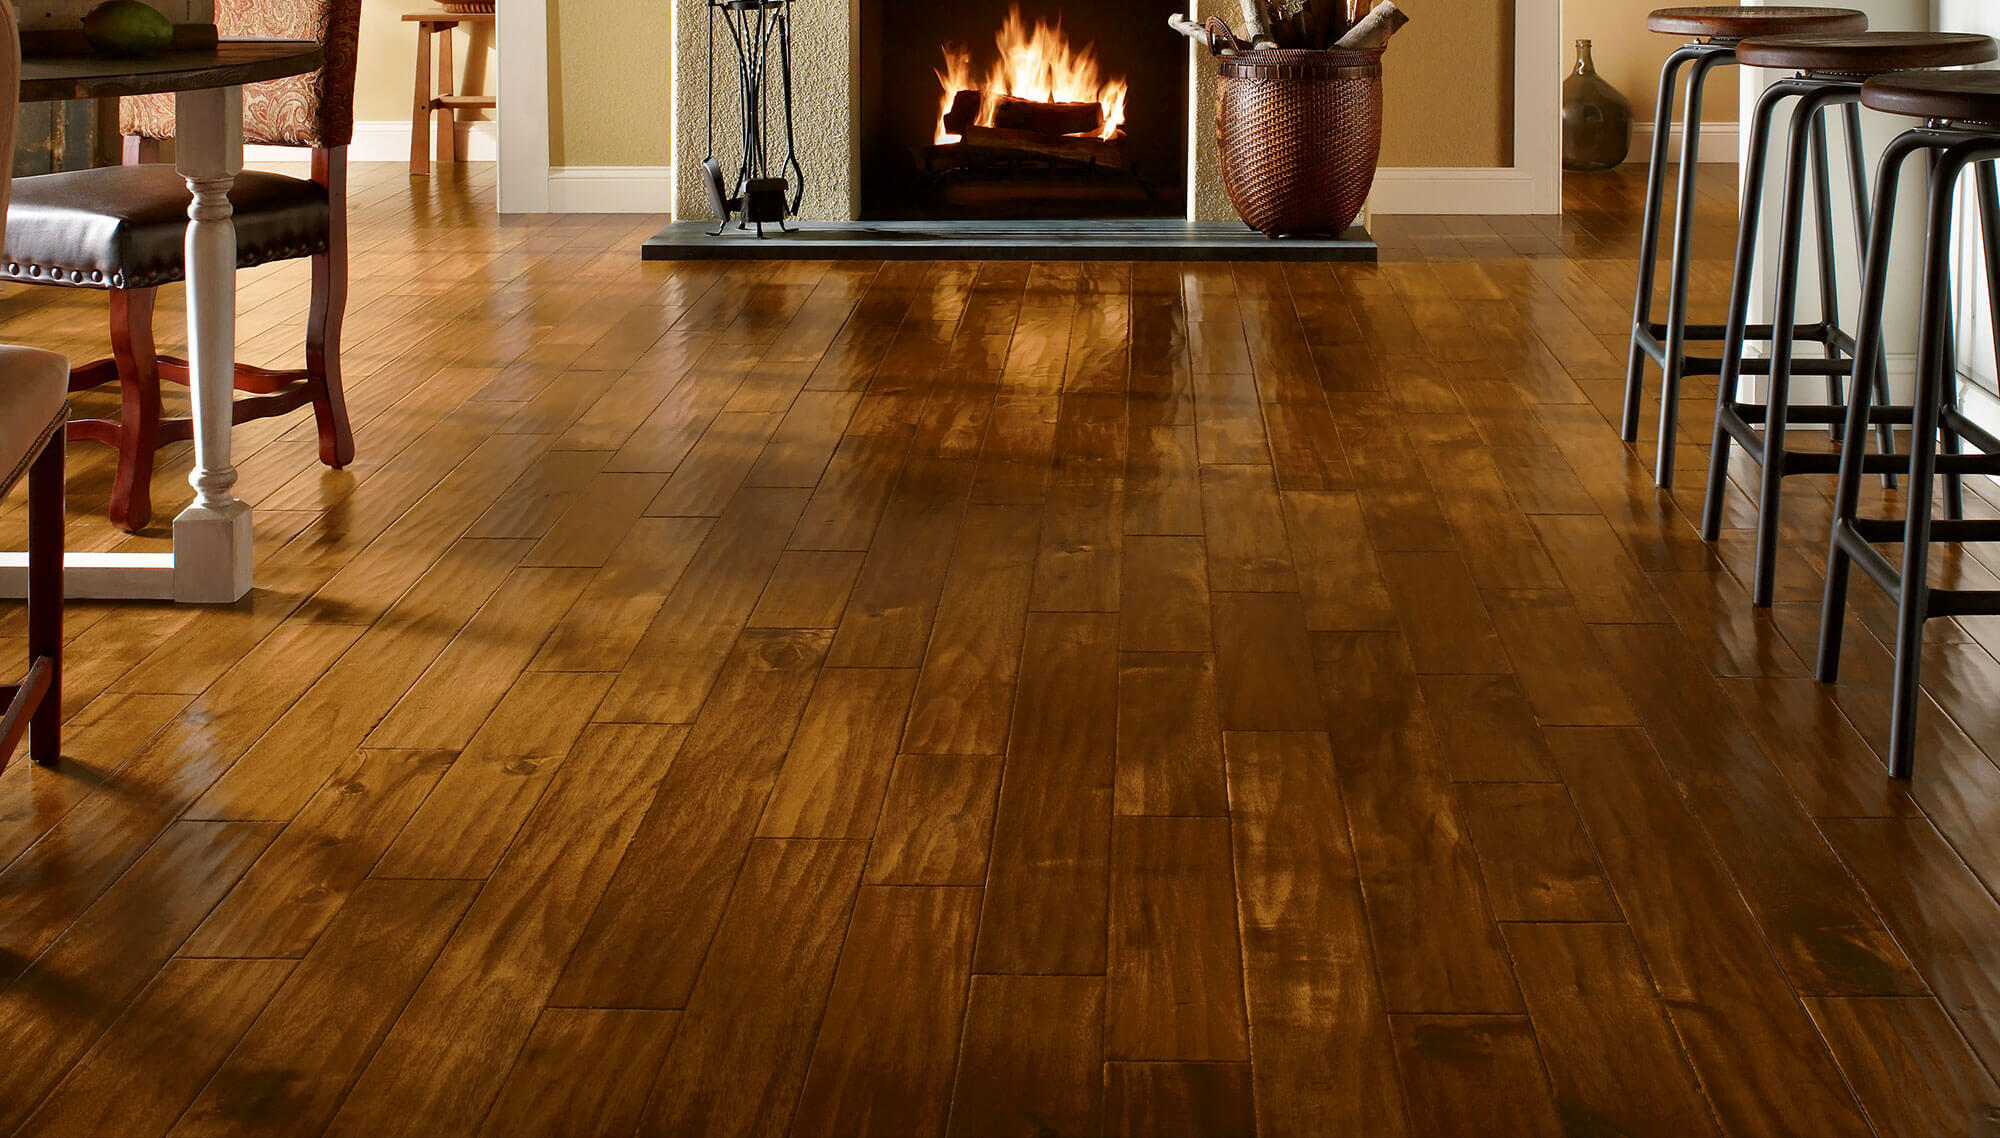 Flooring Choices For Kitchens The Three Big Choices For Your Kitchen Remodel My Ideal Home